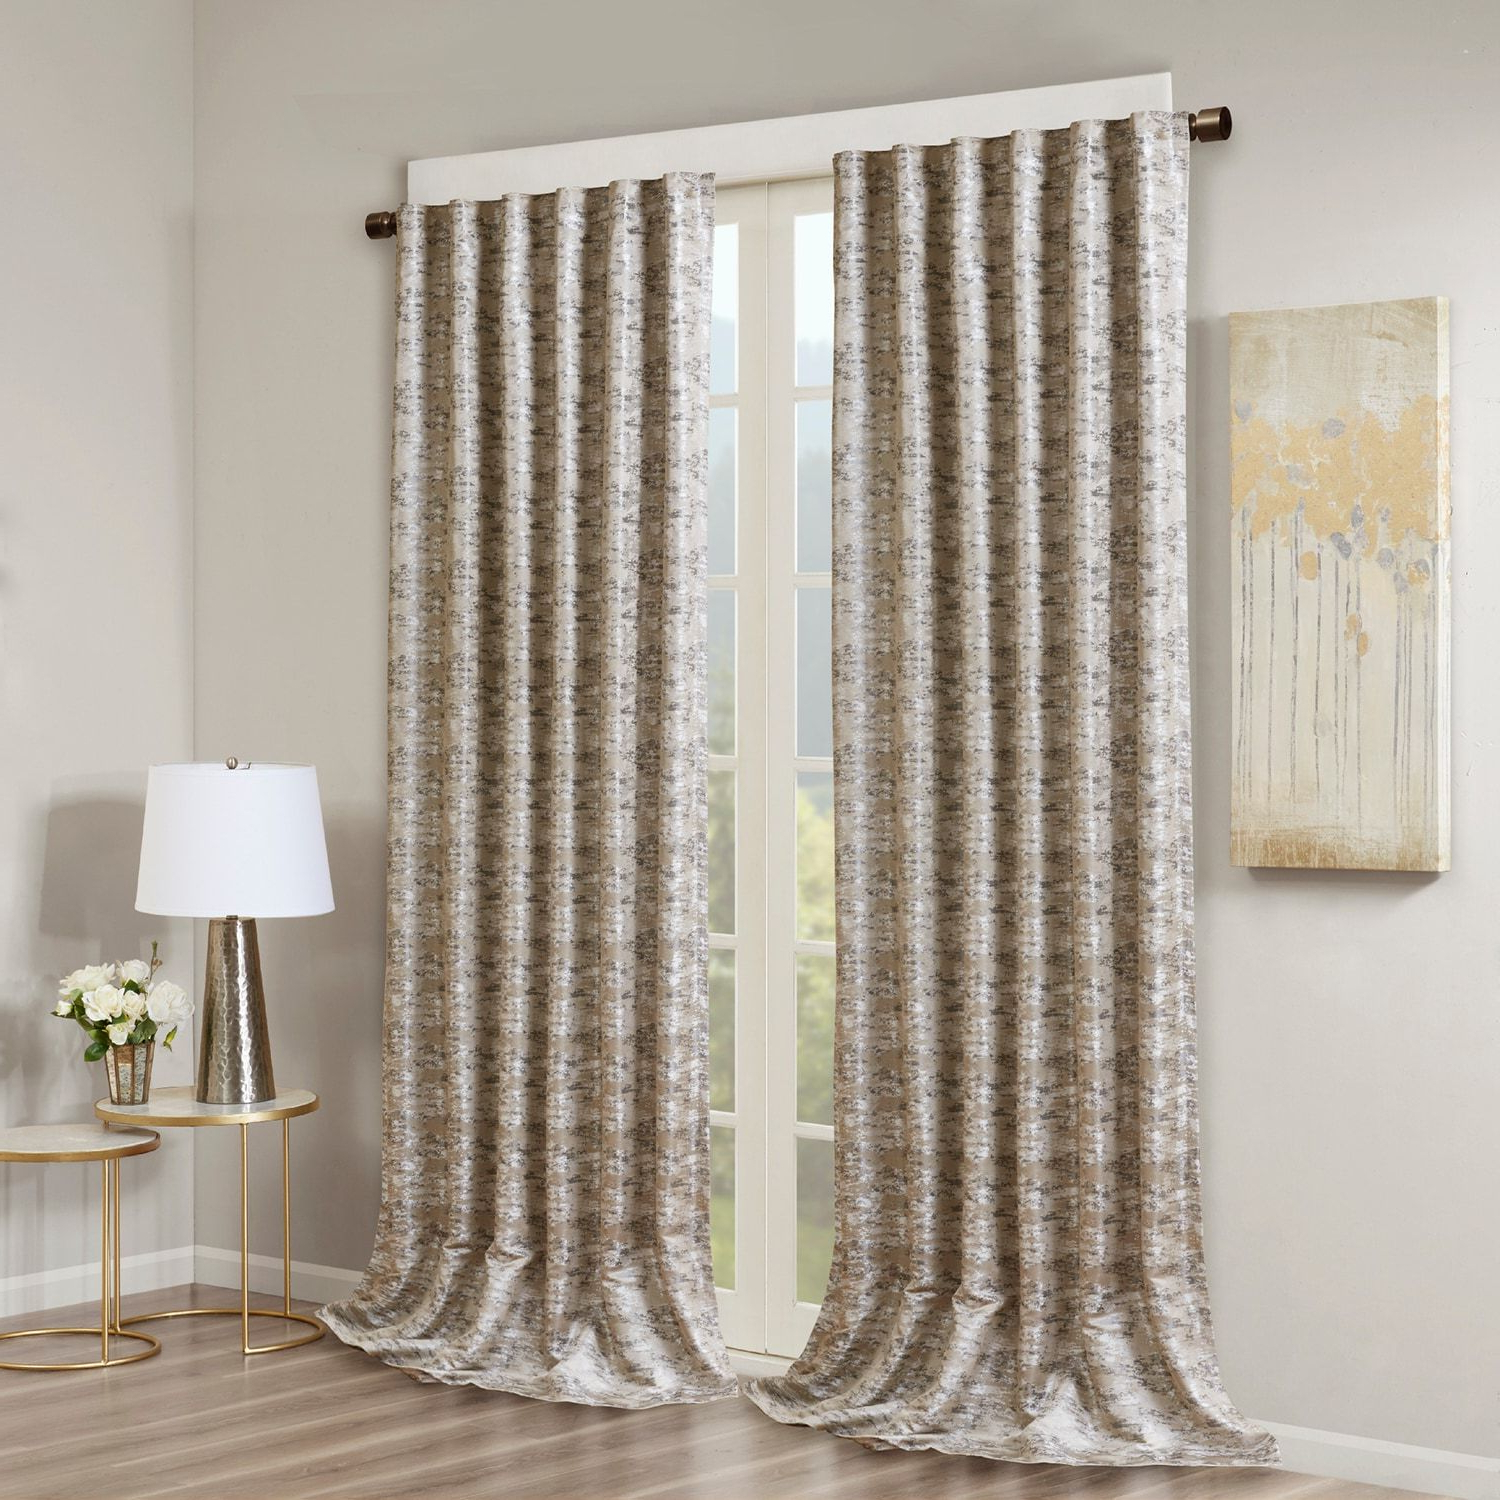 Sunsmart Blackout 1 Panel Odessa Total Window Curtain In With Regard To Widely Used Davis Patio Grommet Top Single Curtain Panels (View 18 of 20)